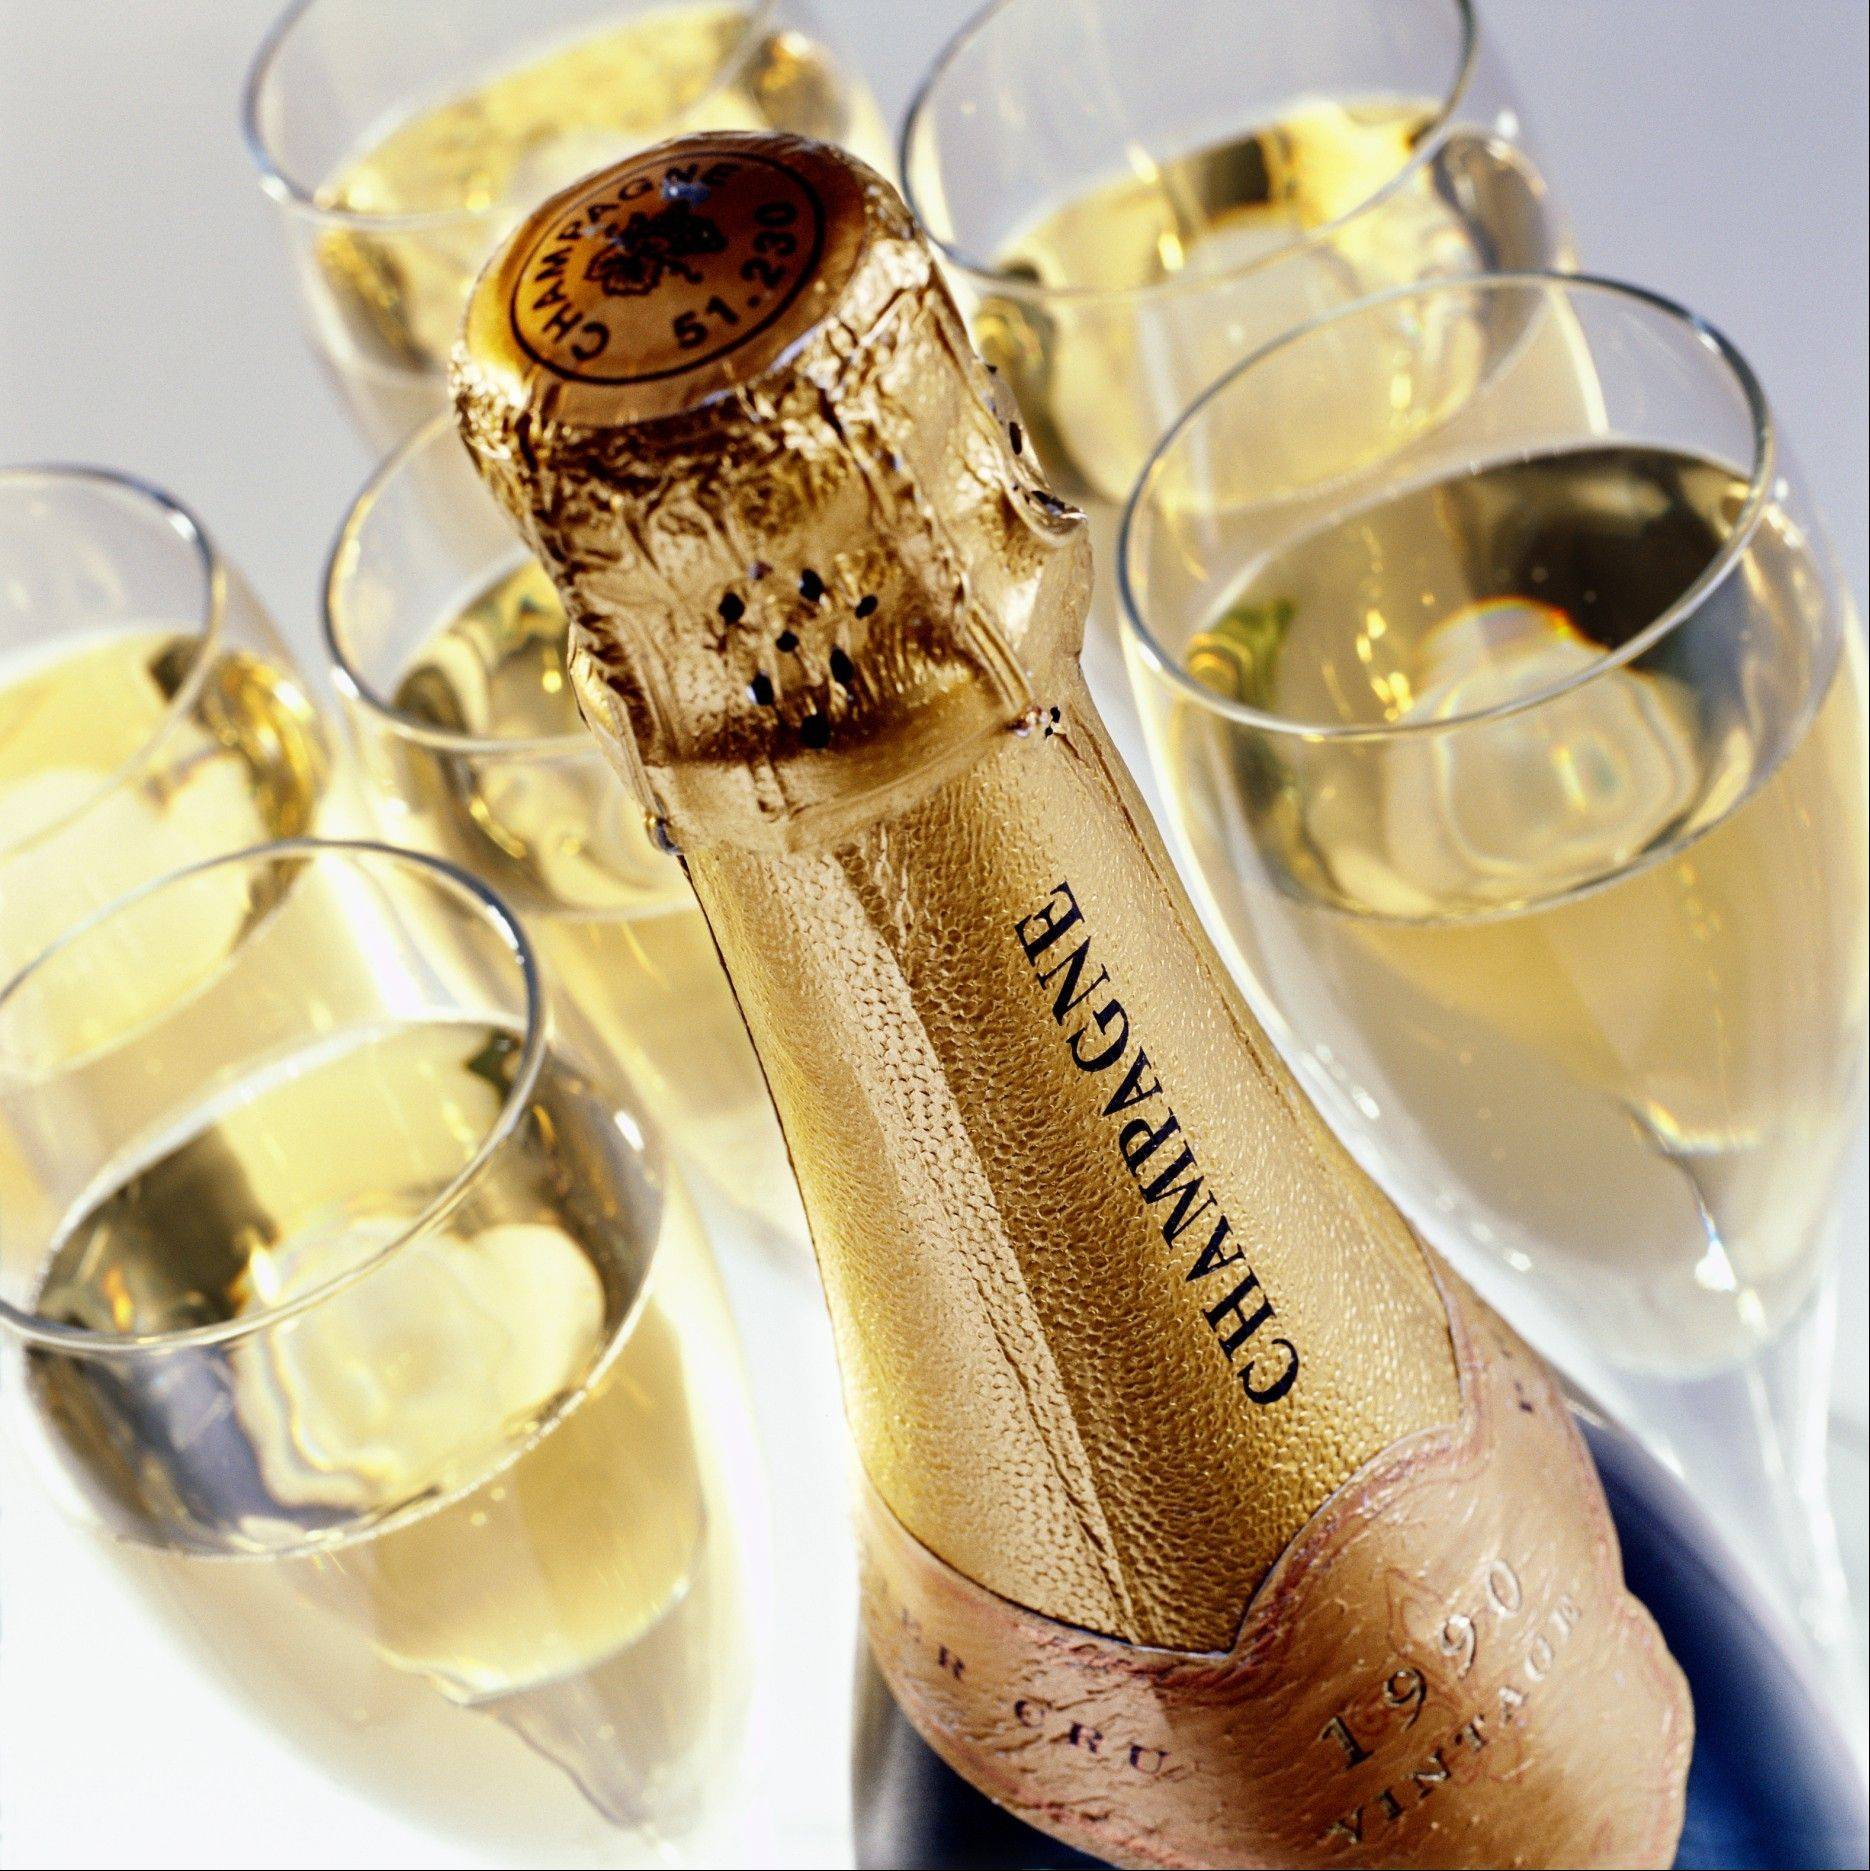 Dry or sweet? It's just one of the decisions you make when selecting a Champagne.